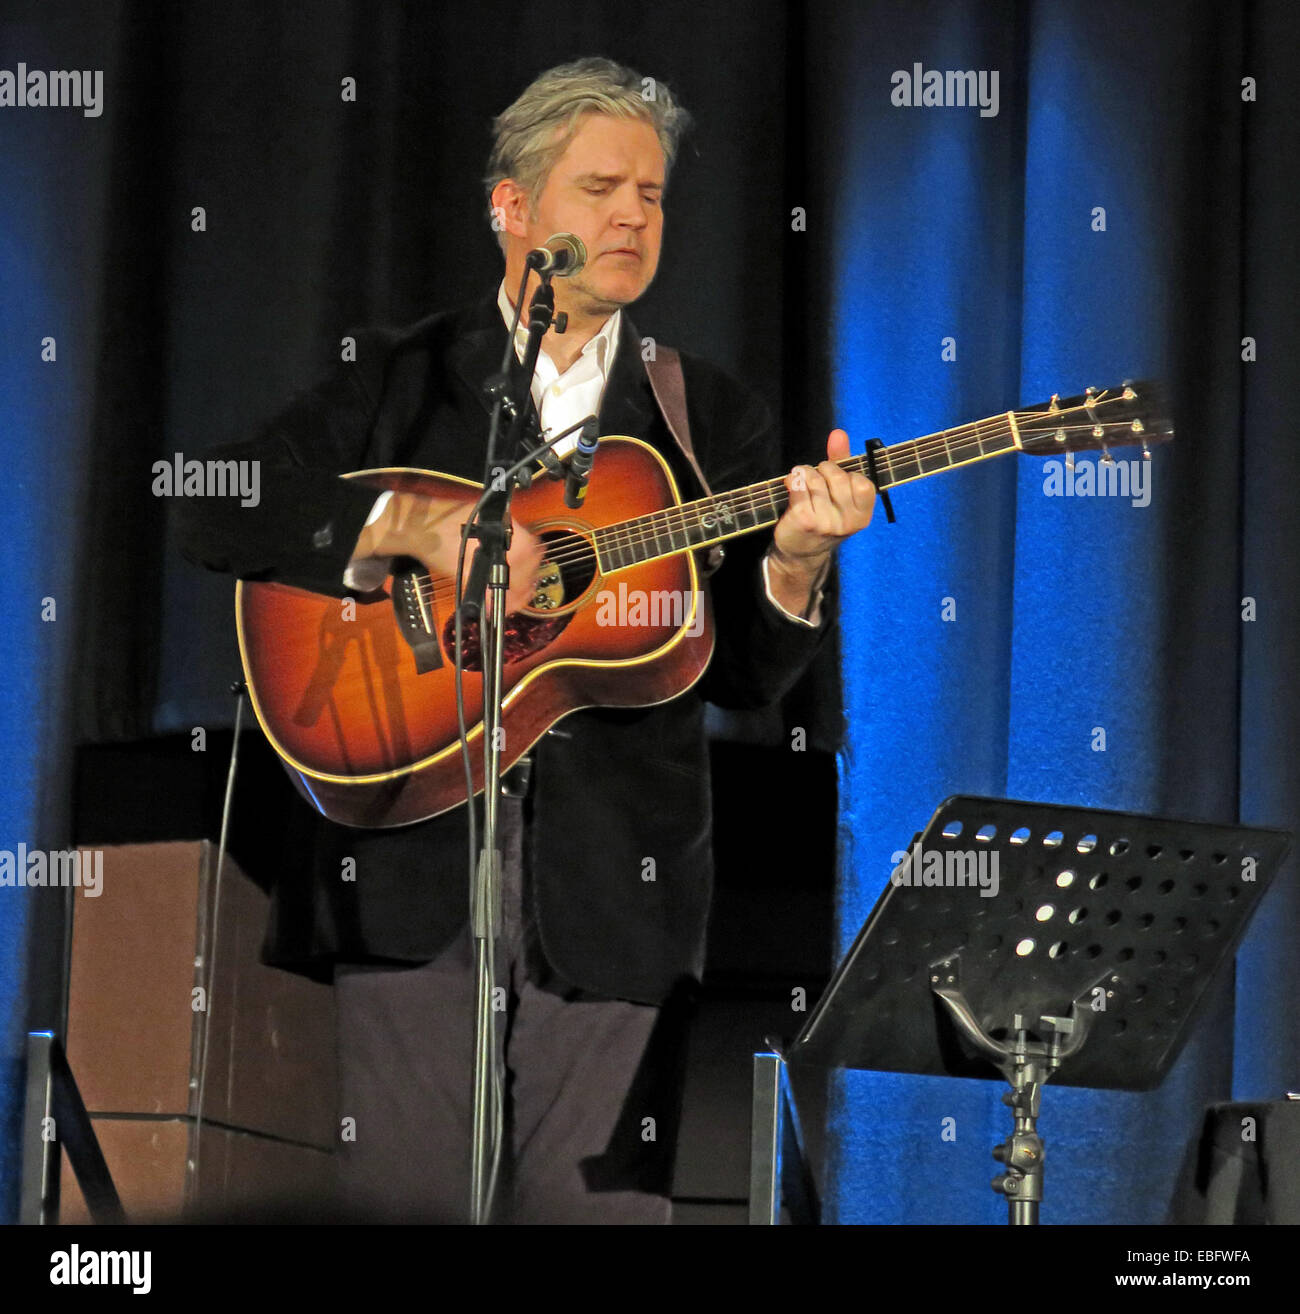 Lloyd Cole live Warrington Parr Hall, Cheshire, England, UK acoustic set 30/11/2013 - Stock Image